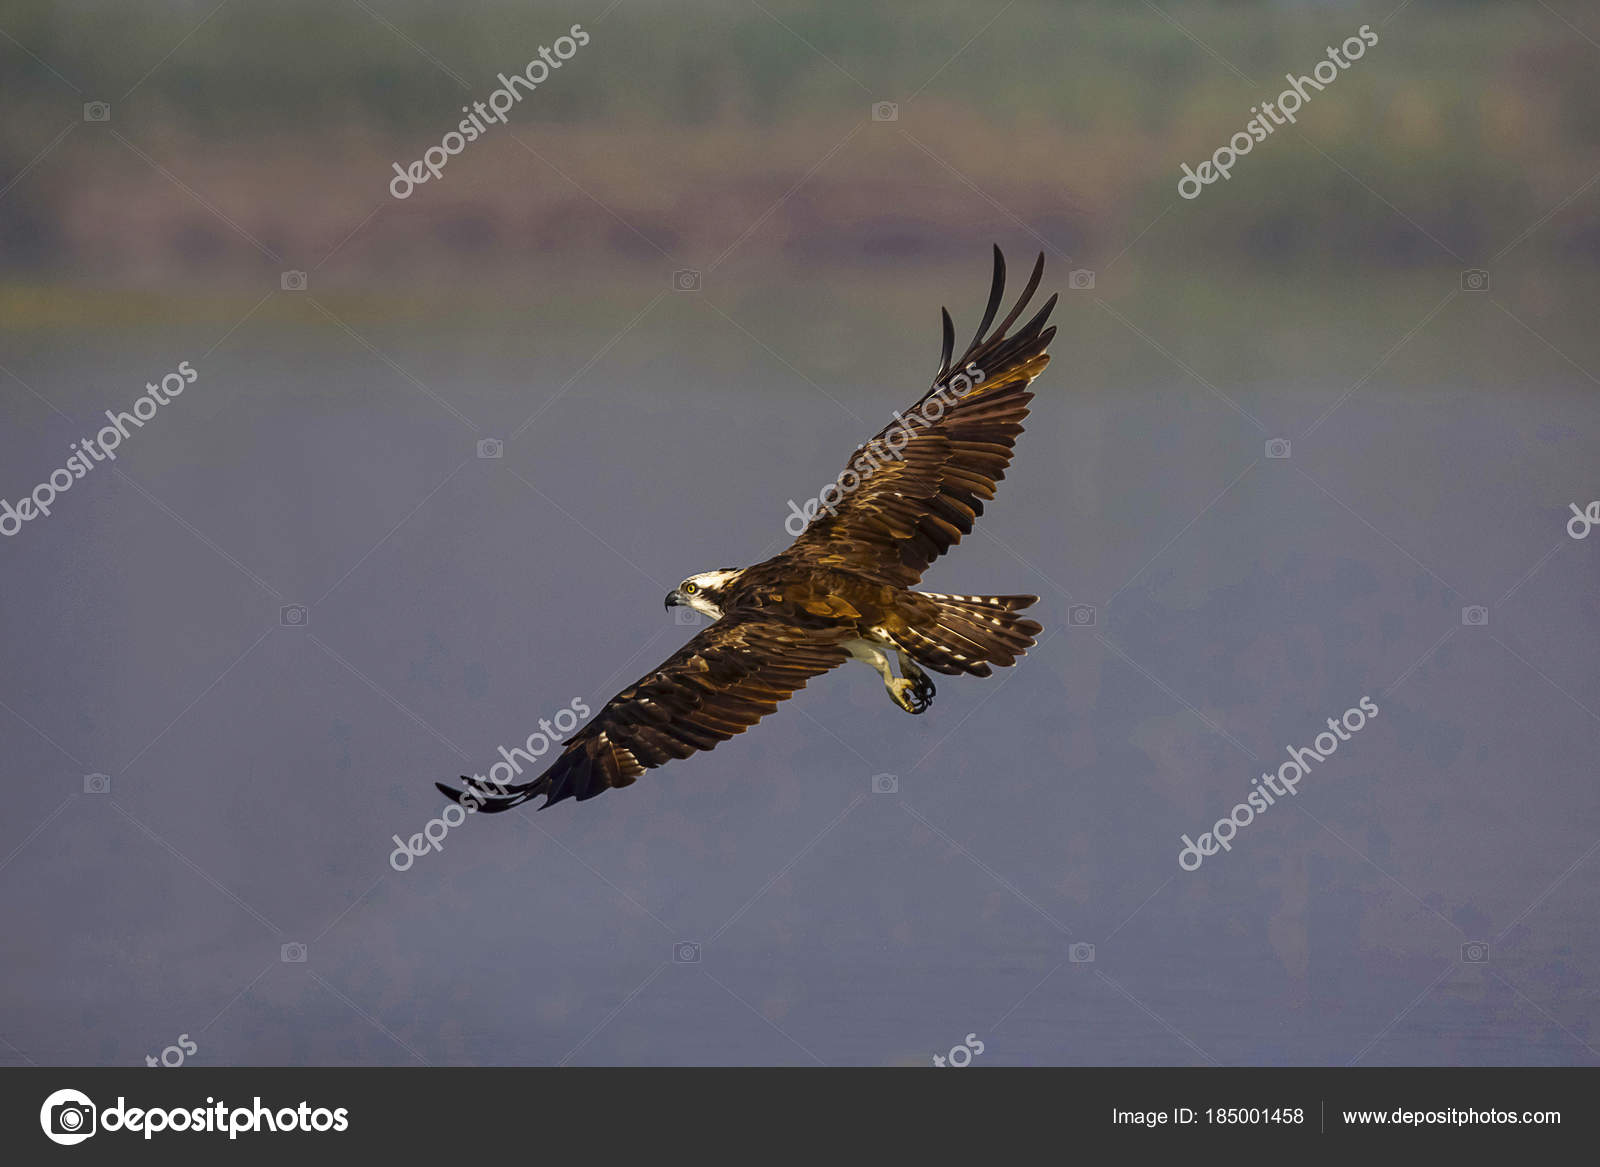 Pictures Osprey In Flight Osprey In Flight Pandion Haliaetus Or Fish Eagle Or Sea Hawk Stock Photo Realityimages 185001458